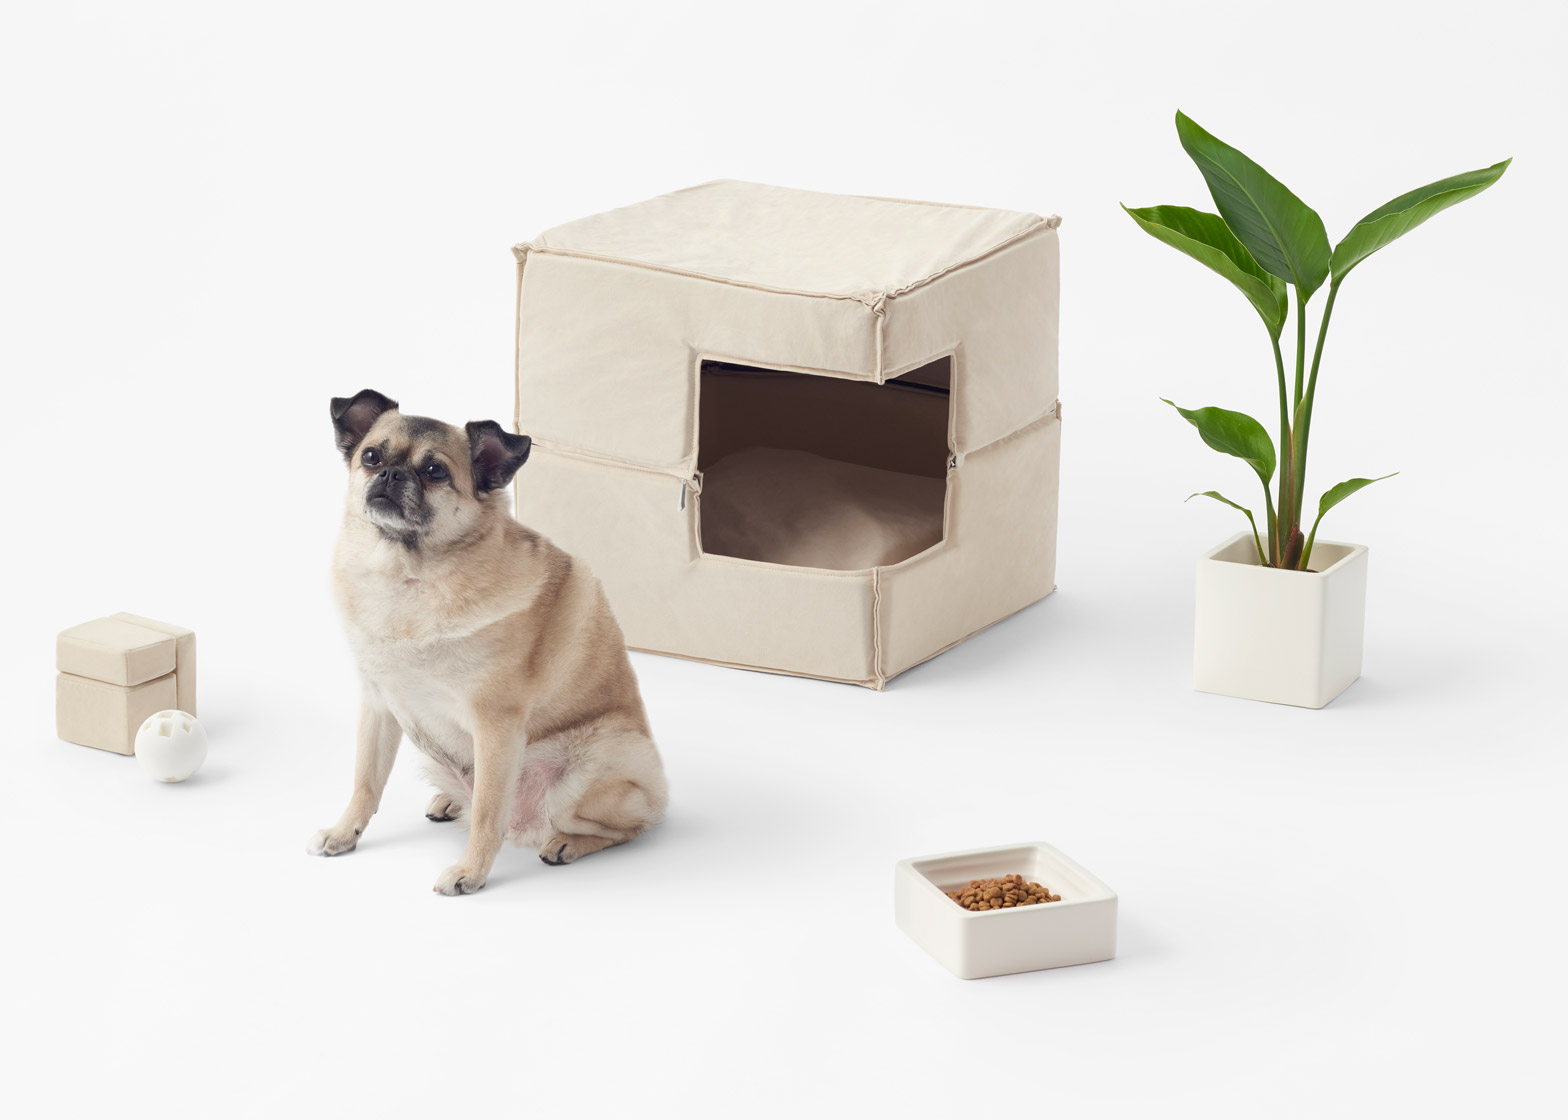 Cubic pet goods by Nendo